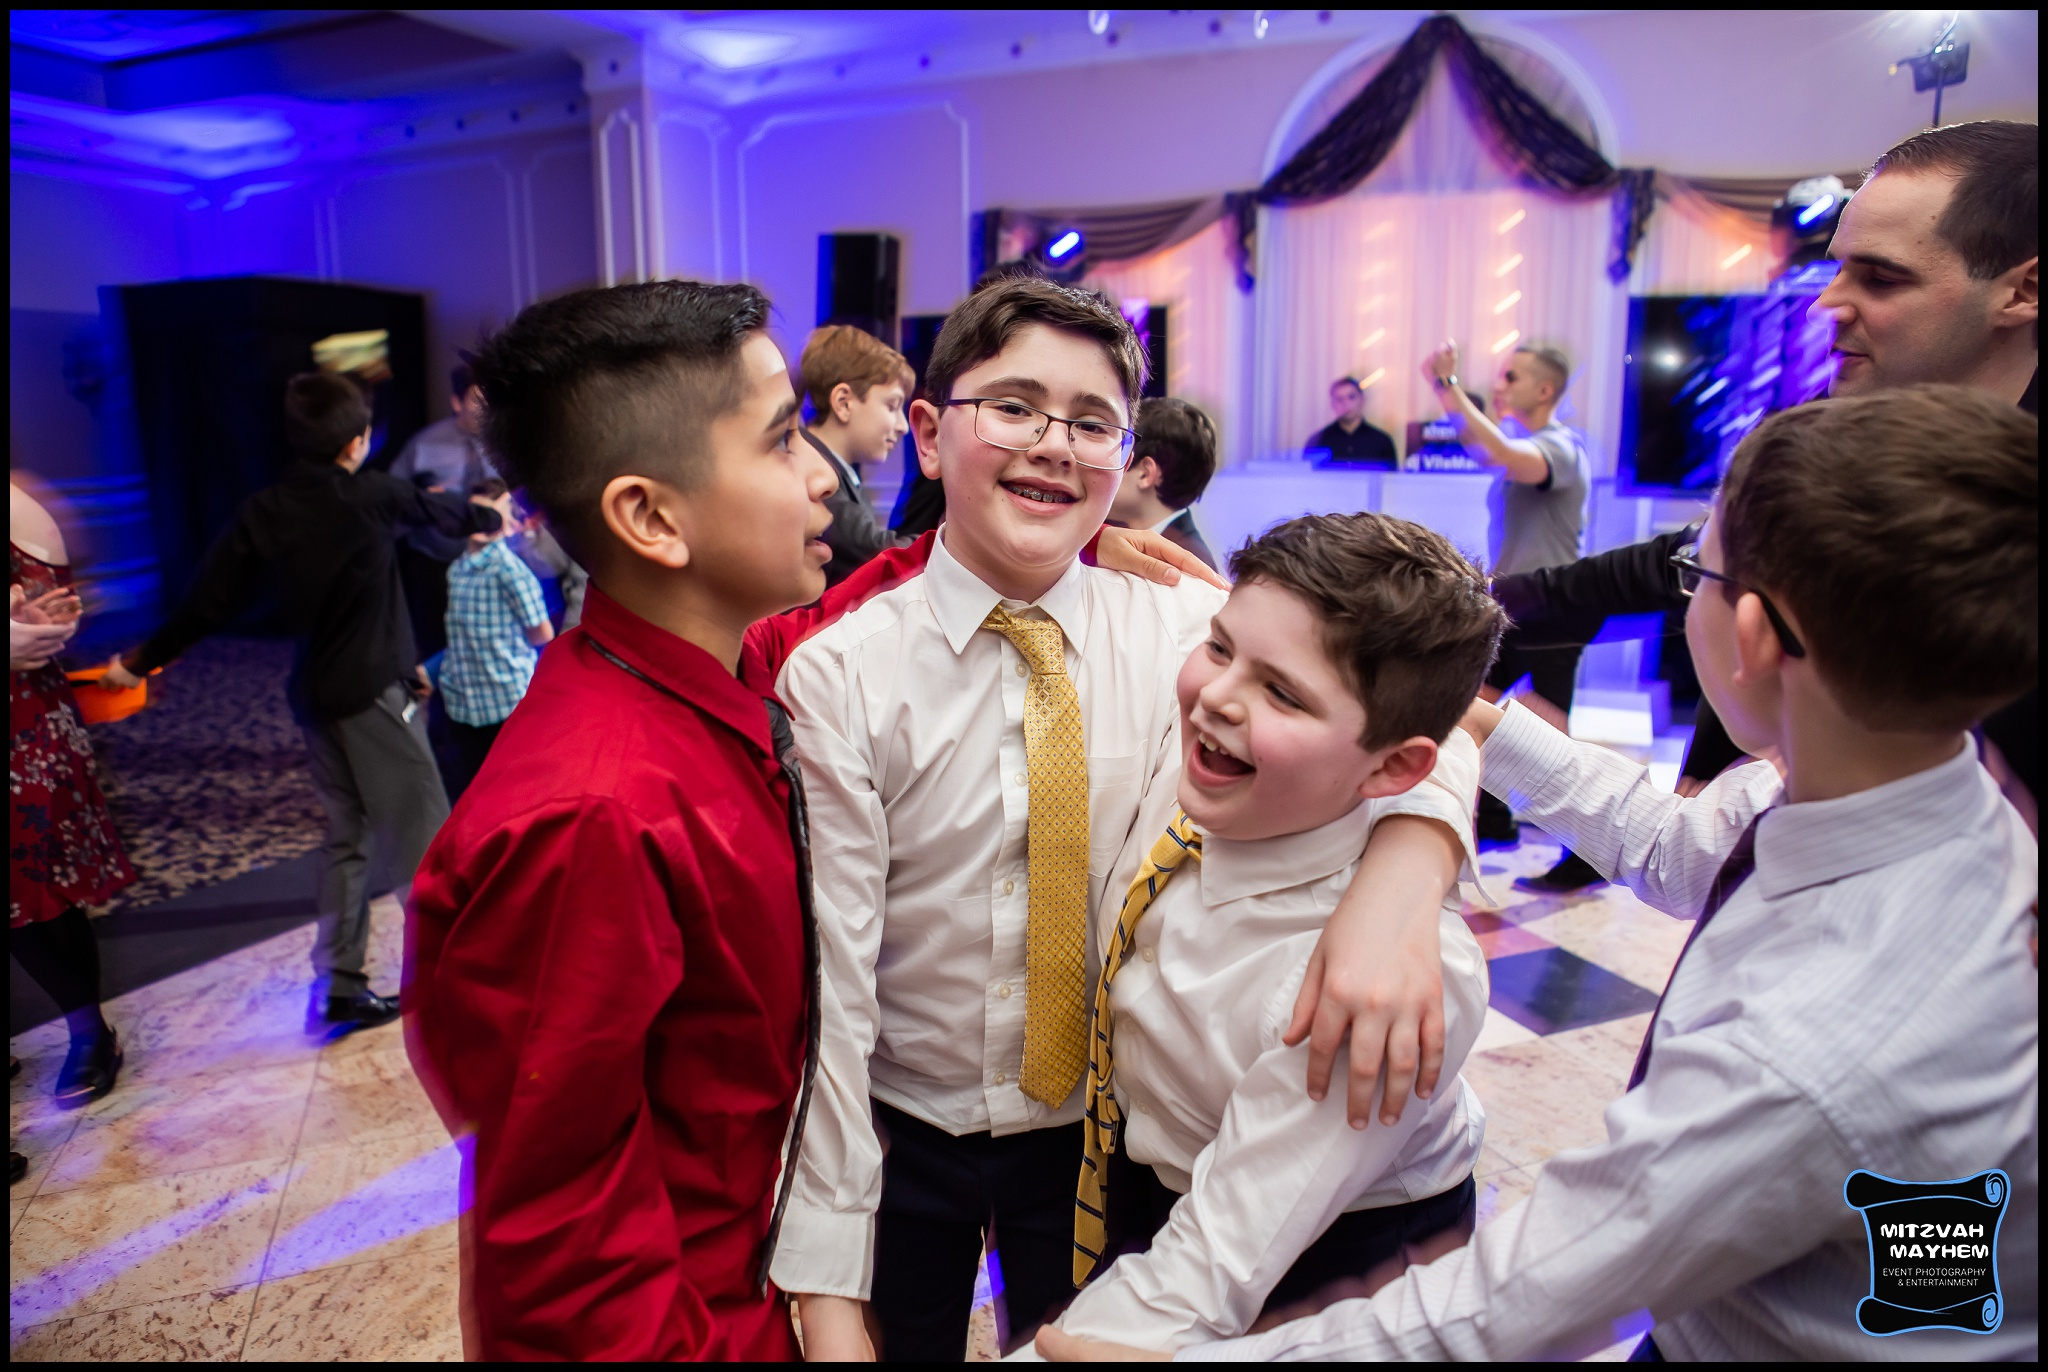 nj-mitzvah-photographer-jacques-caterers-2.JPG